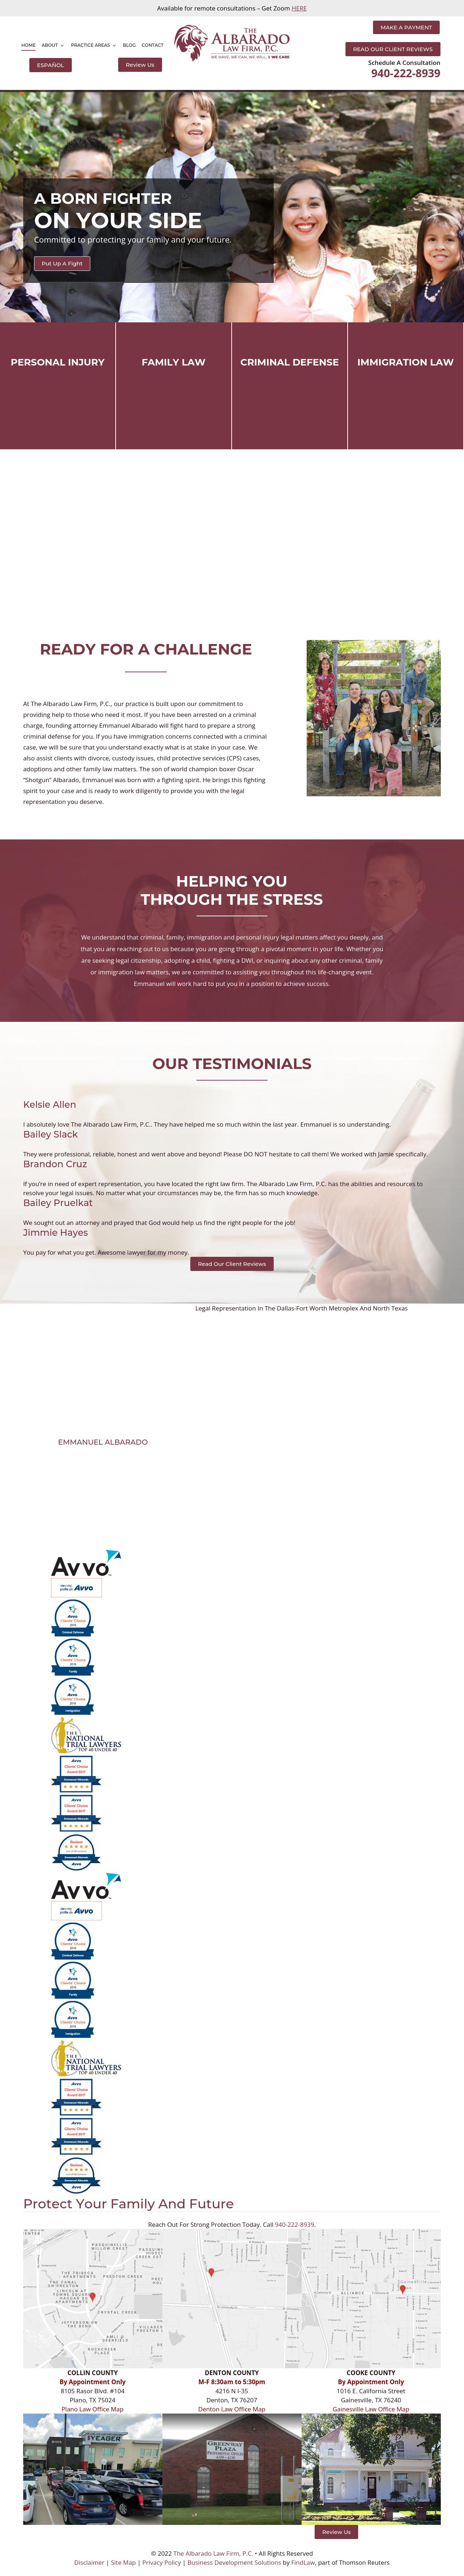 The Albarado Law Firm, P.C. - Denton TX Lawyers